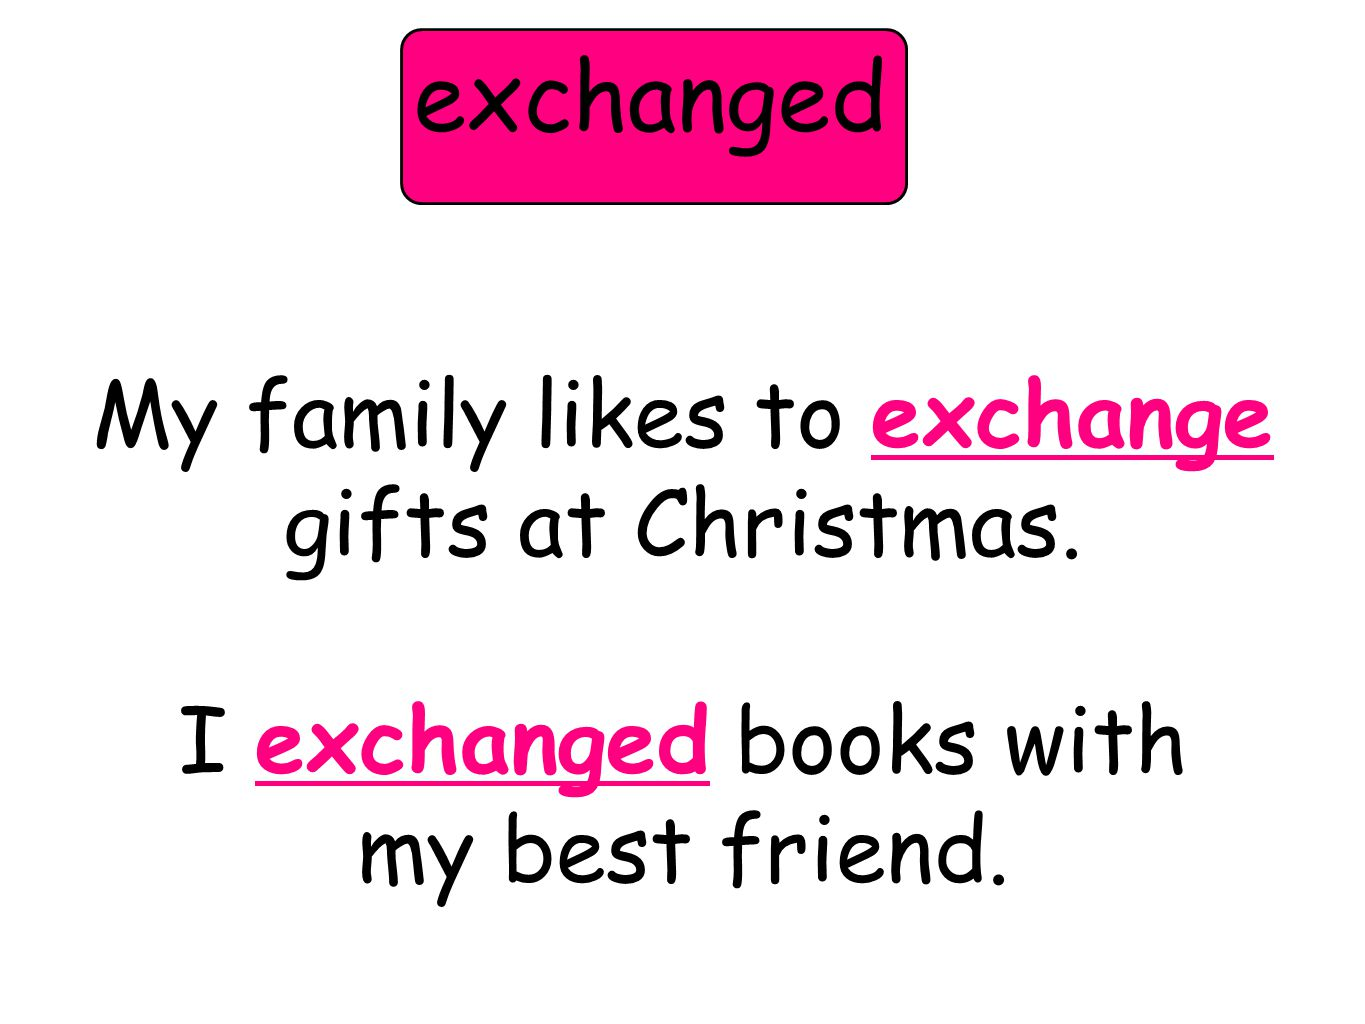 My family likes to exchange gifts at Christmas. I exchanged books with my best friend. exchanged